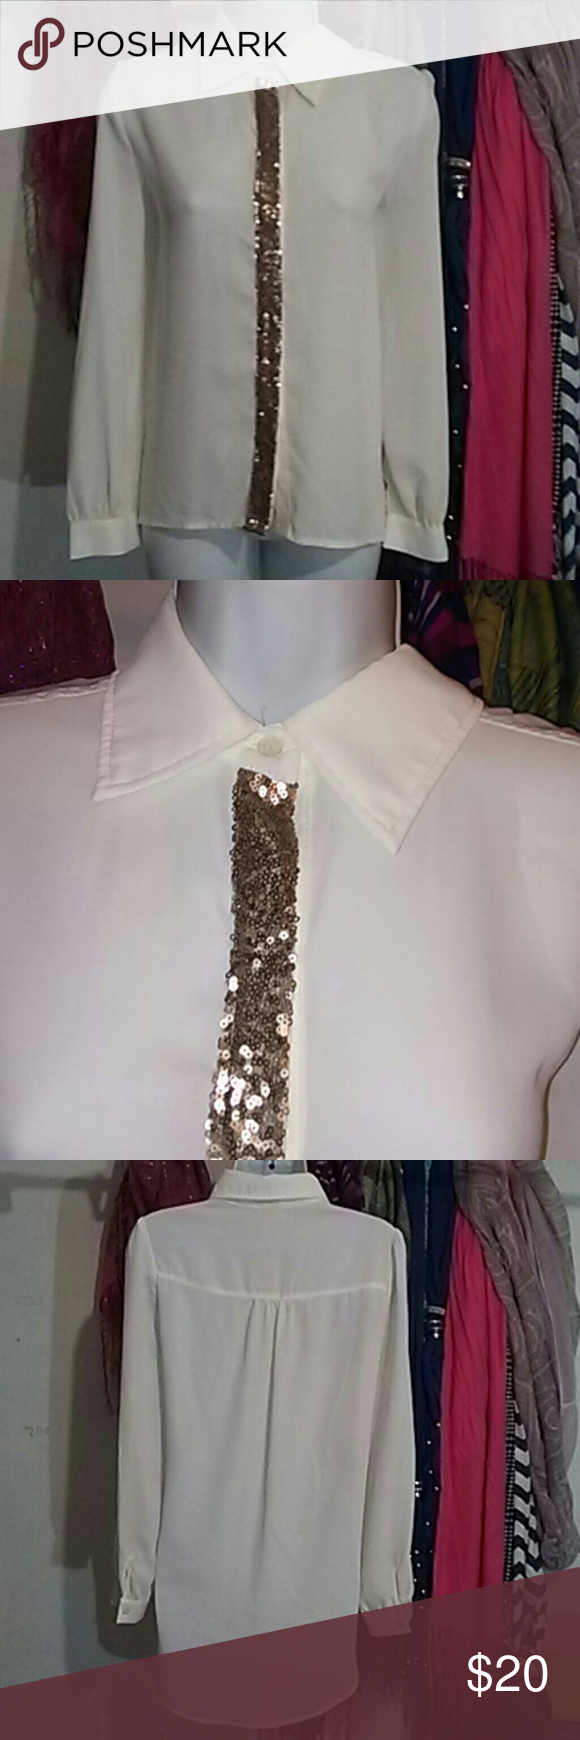 "❗MAKE OFFER!❗Chiffon High-Low Blouse by Tobi Nwot. Has copper colored sequins alongside the buttons.  In new condition.  High-low. 100% Polyester   Measurements:  Bust: 19"" Length from shoulder to bottom: Front length; 24""  Back length from the center is 32"" Tobi Tops Blouses"